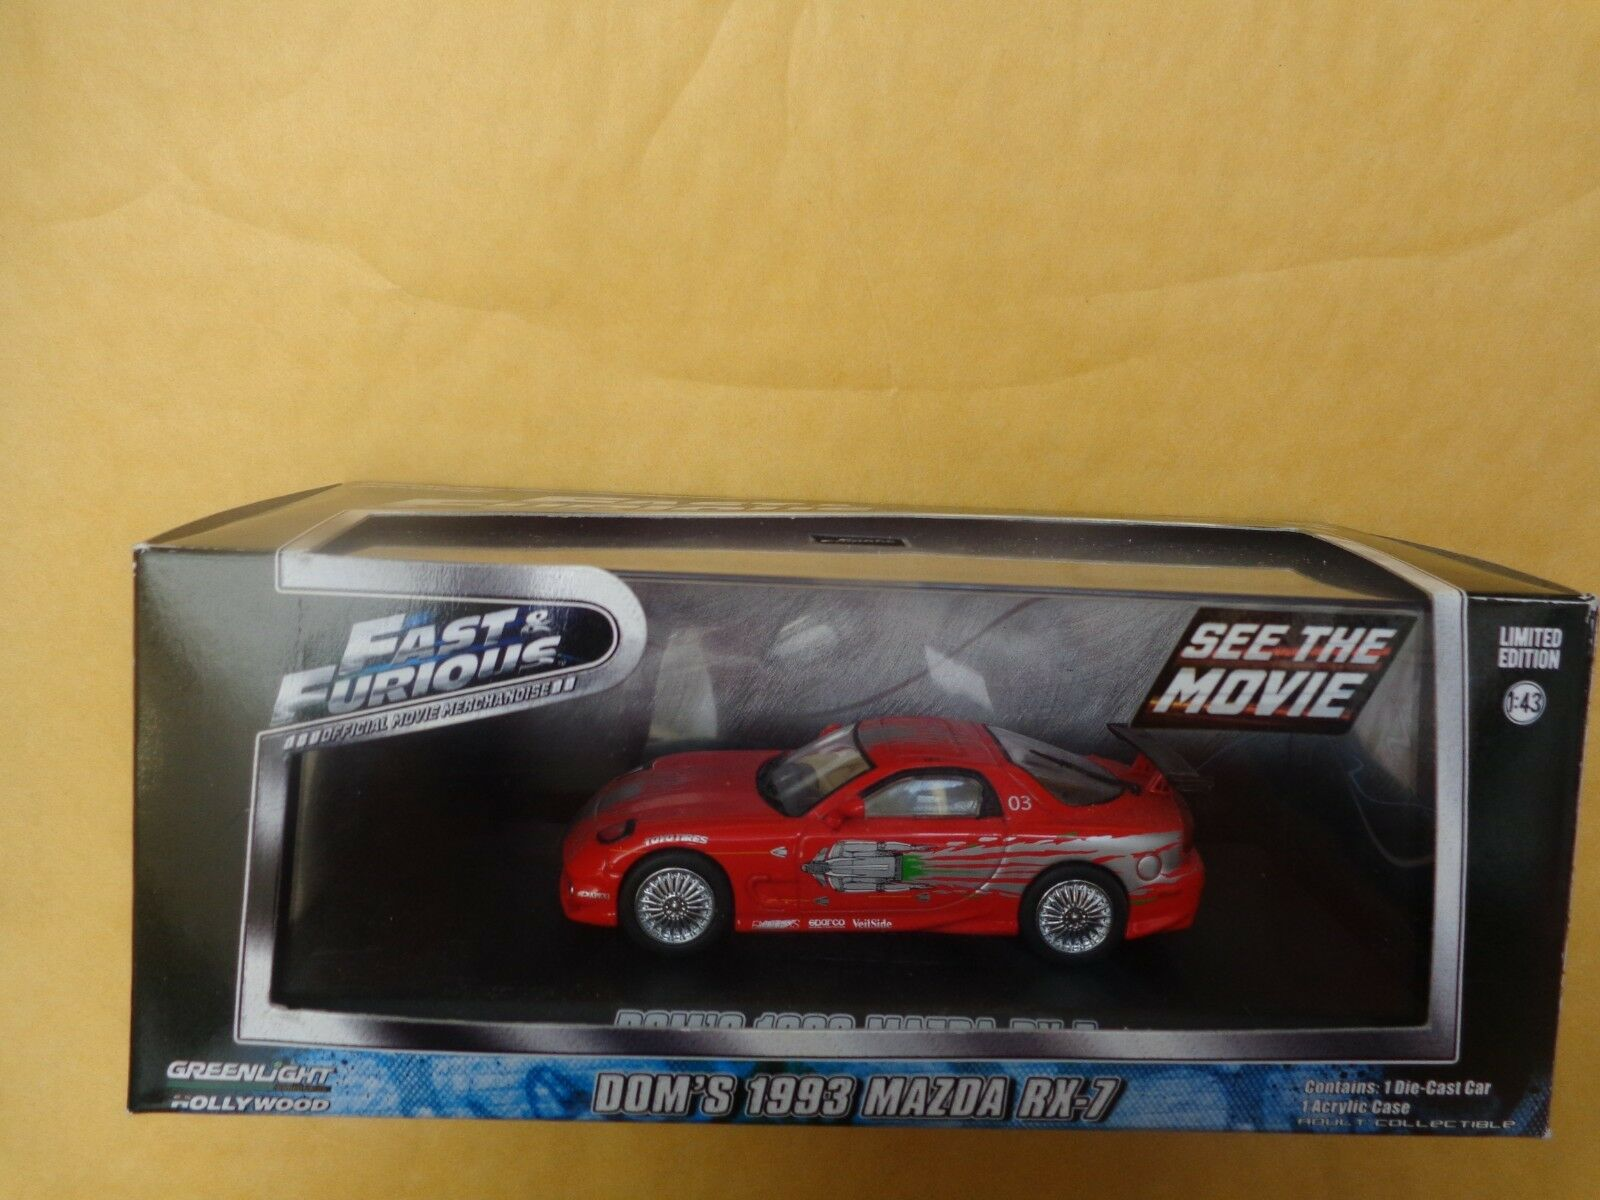 GREENLIGHT 1 43 - DOM'S 1993 MAZDA RX-7 FAST & FURIOUS DIECAST CAR 86204